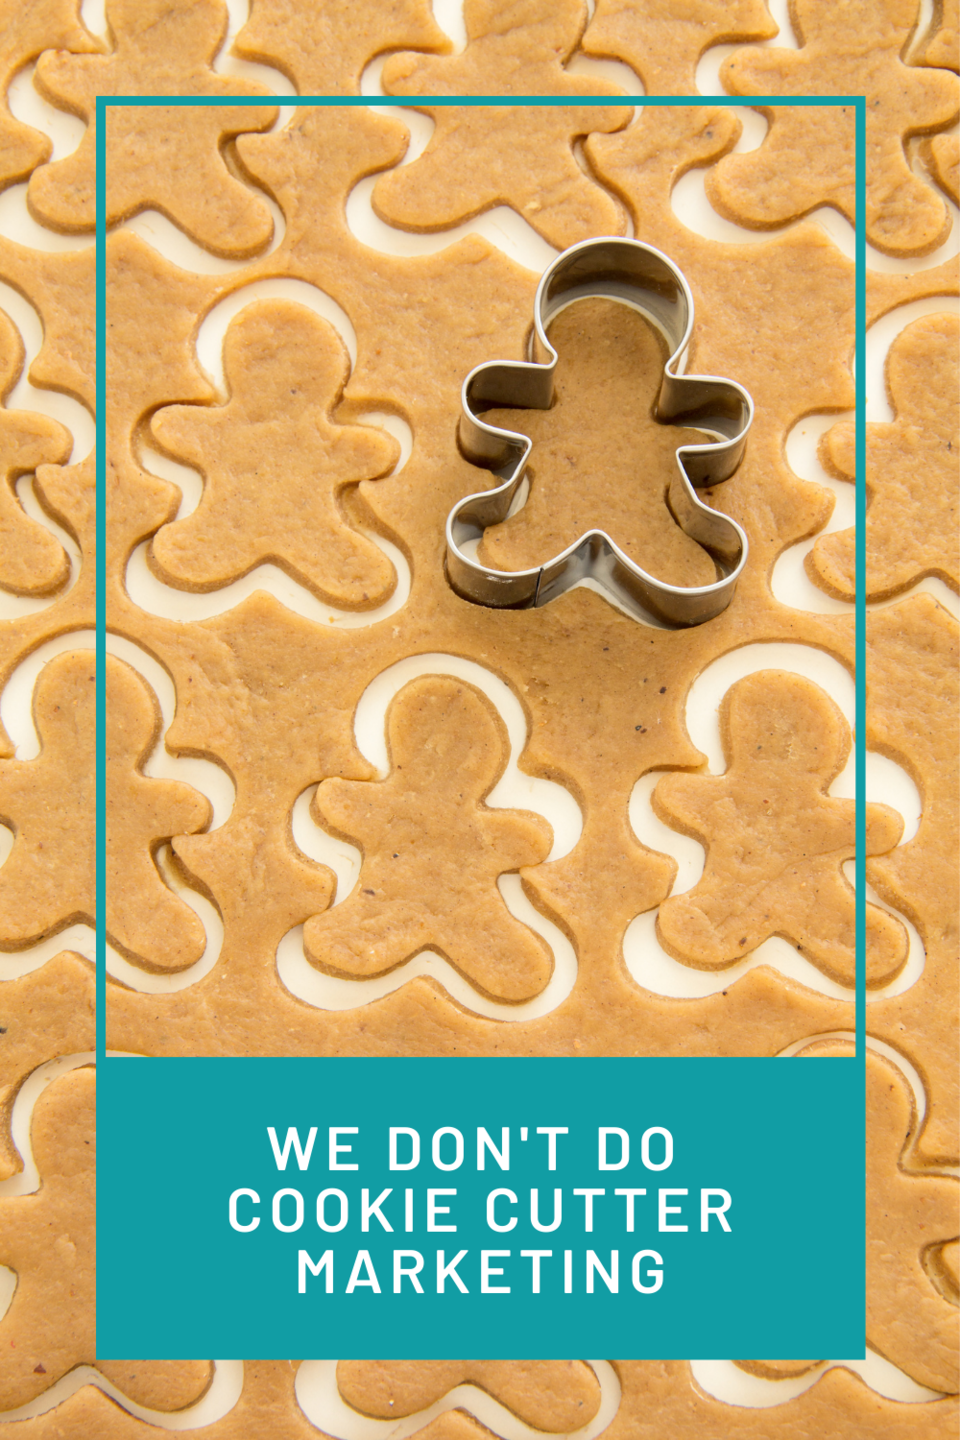 we don't do cookie cutter marketing